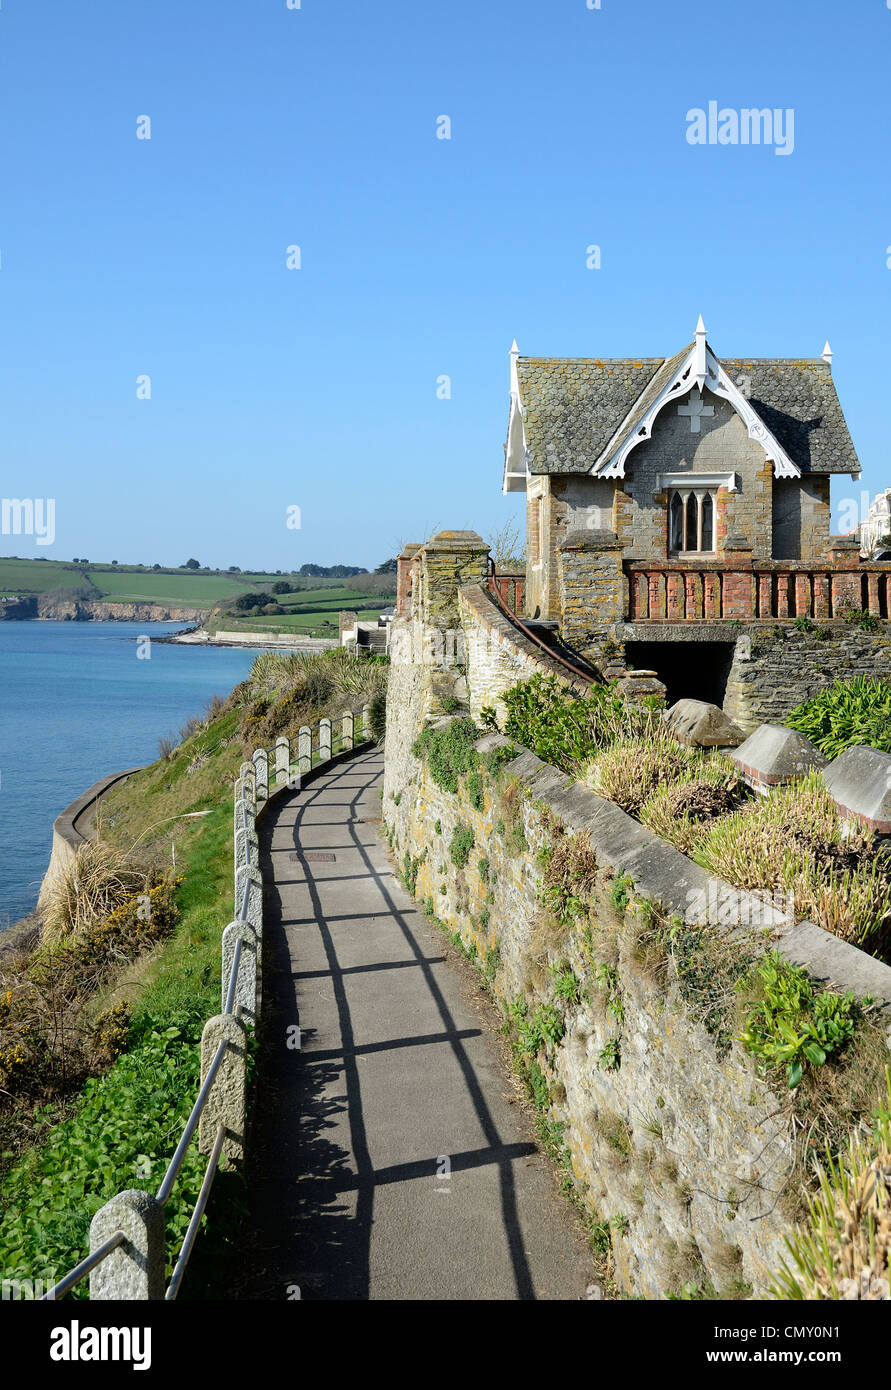 The summer house on cliff road in falmouth, cornwal, uk - Stock Image